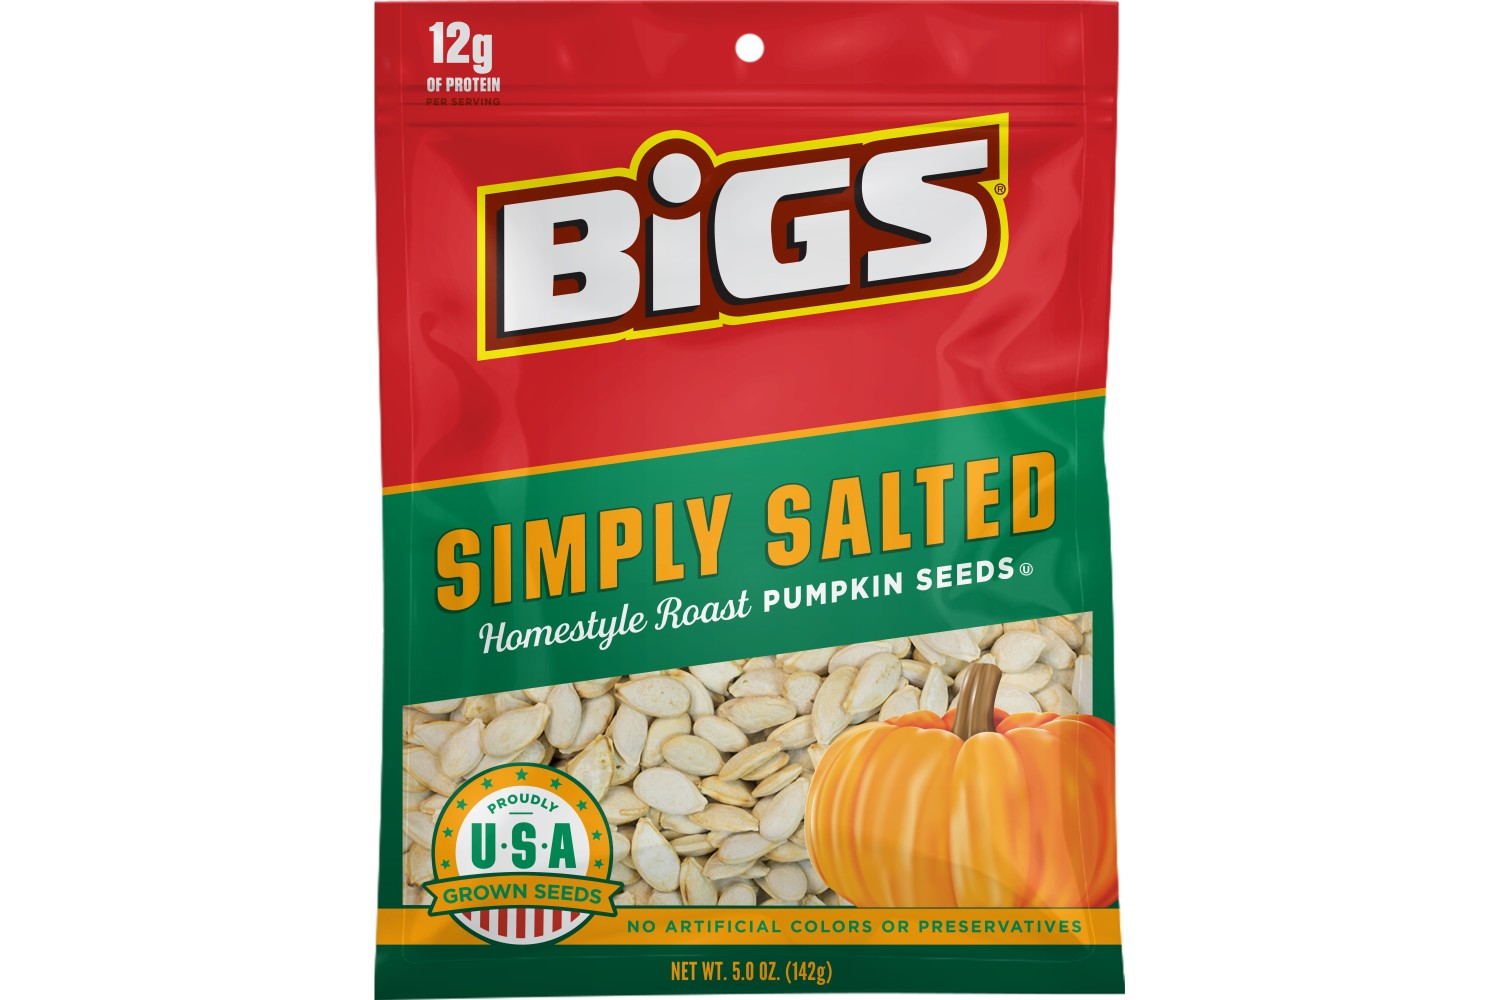 BIGS Simply Salted Pumpkin Seeds